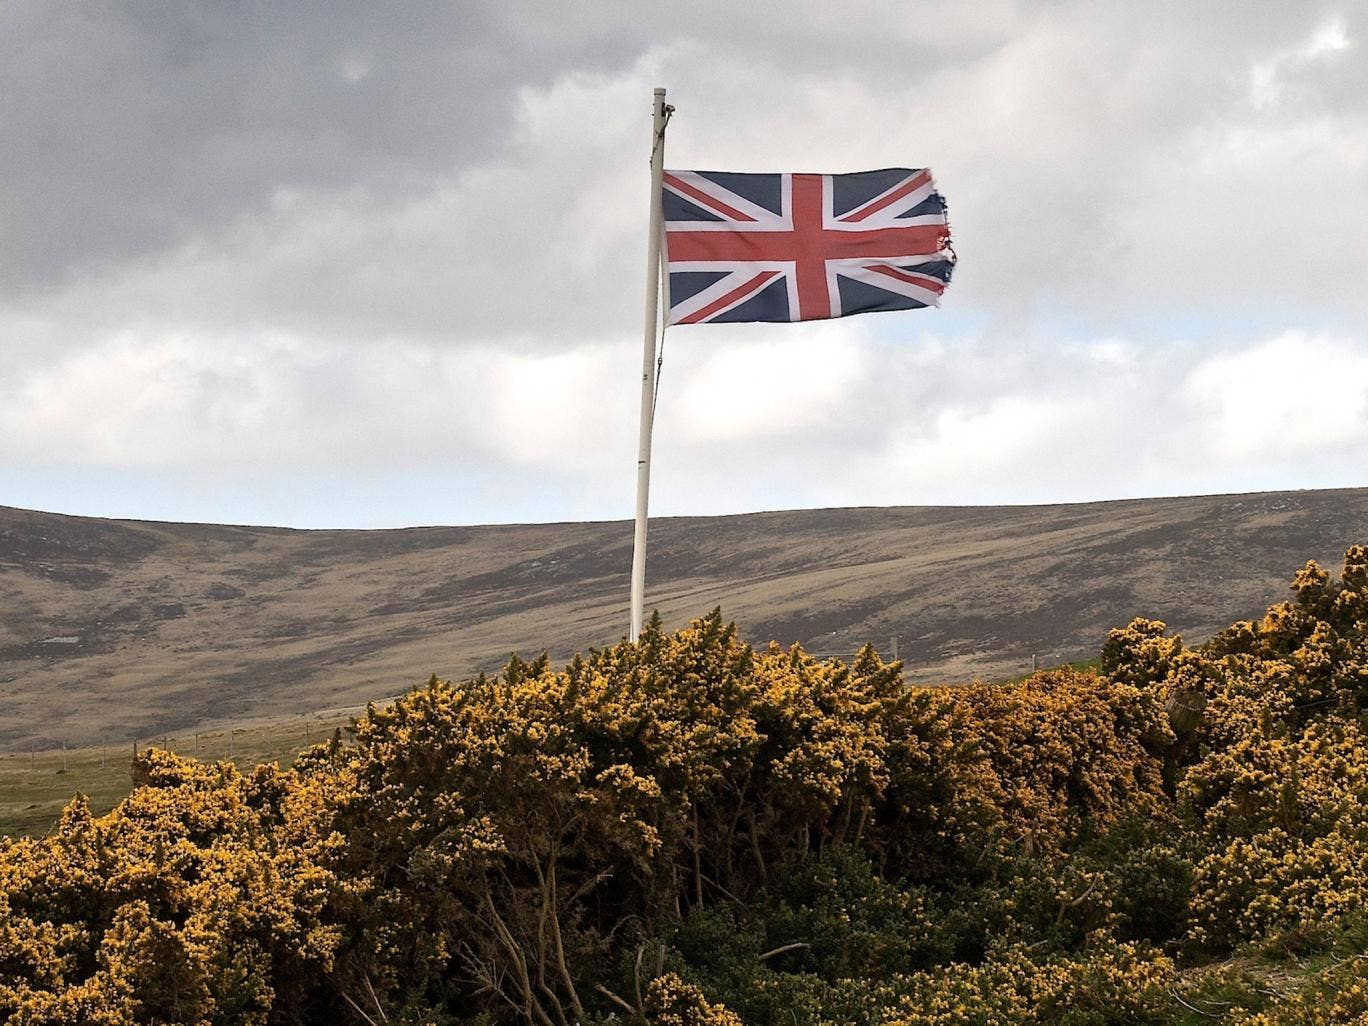 The Union Jack flying over the British War Cemetry at San Carlos in the Falkland Islands